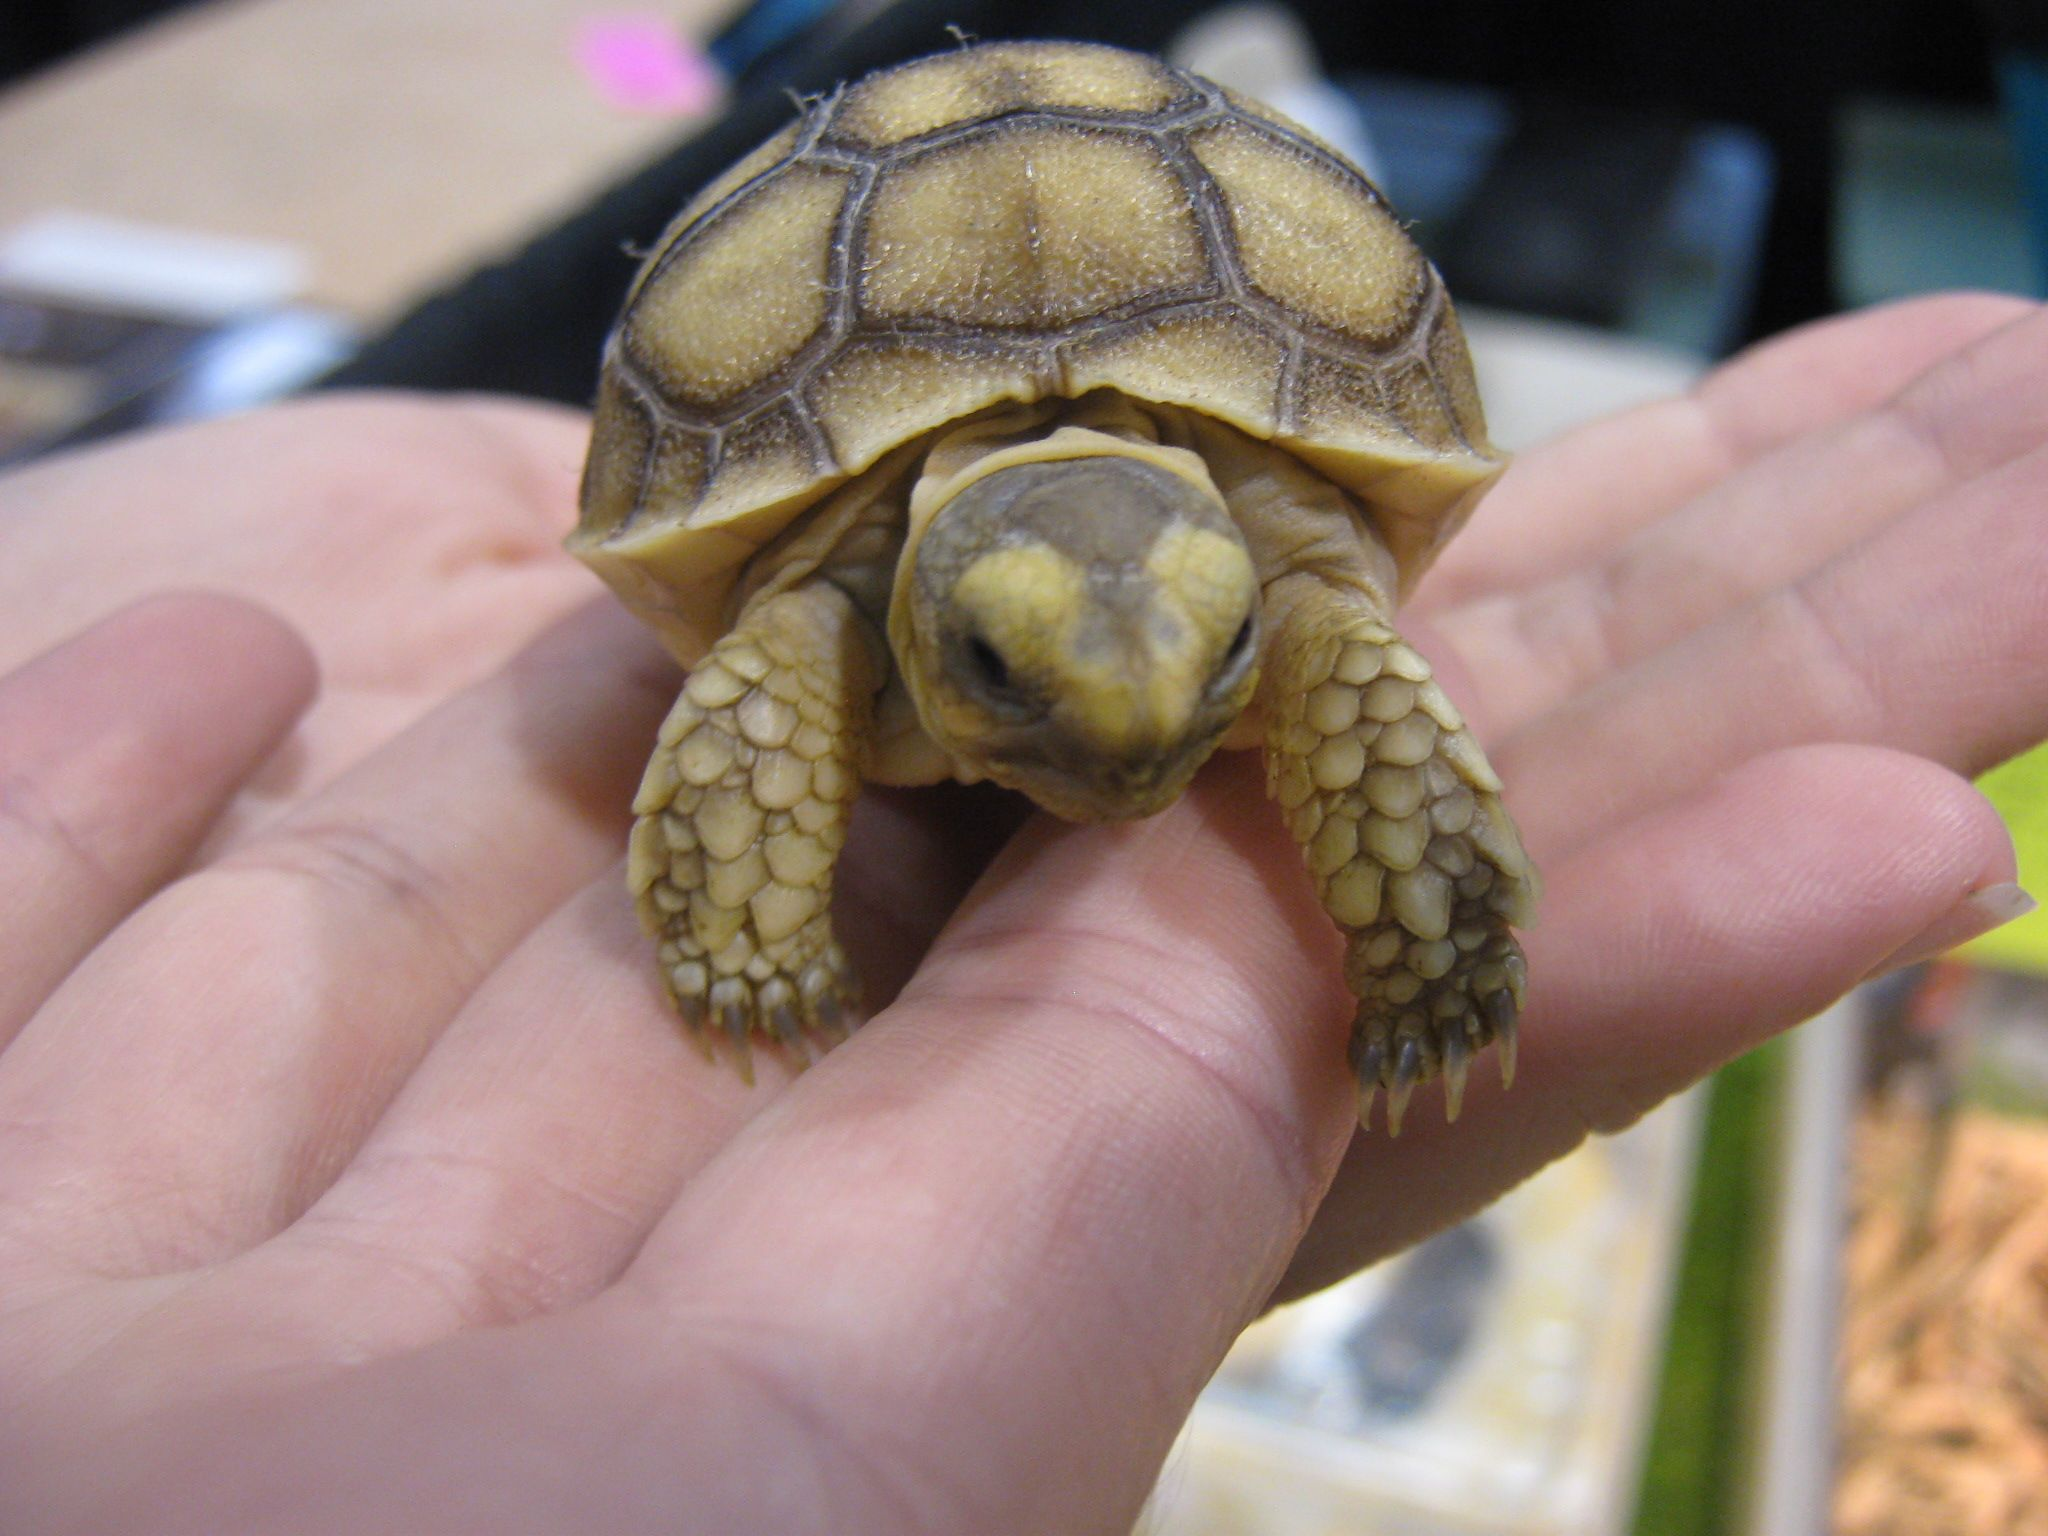 TIPS FOR CHOOSING PETS REPTILE TURTLE..... TURTLES ARE